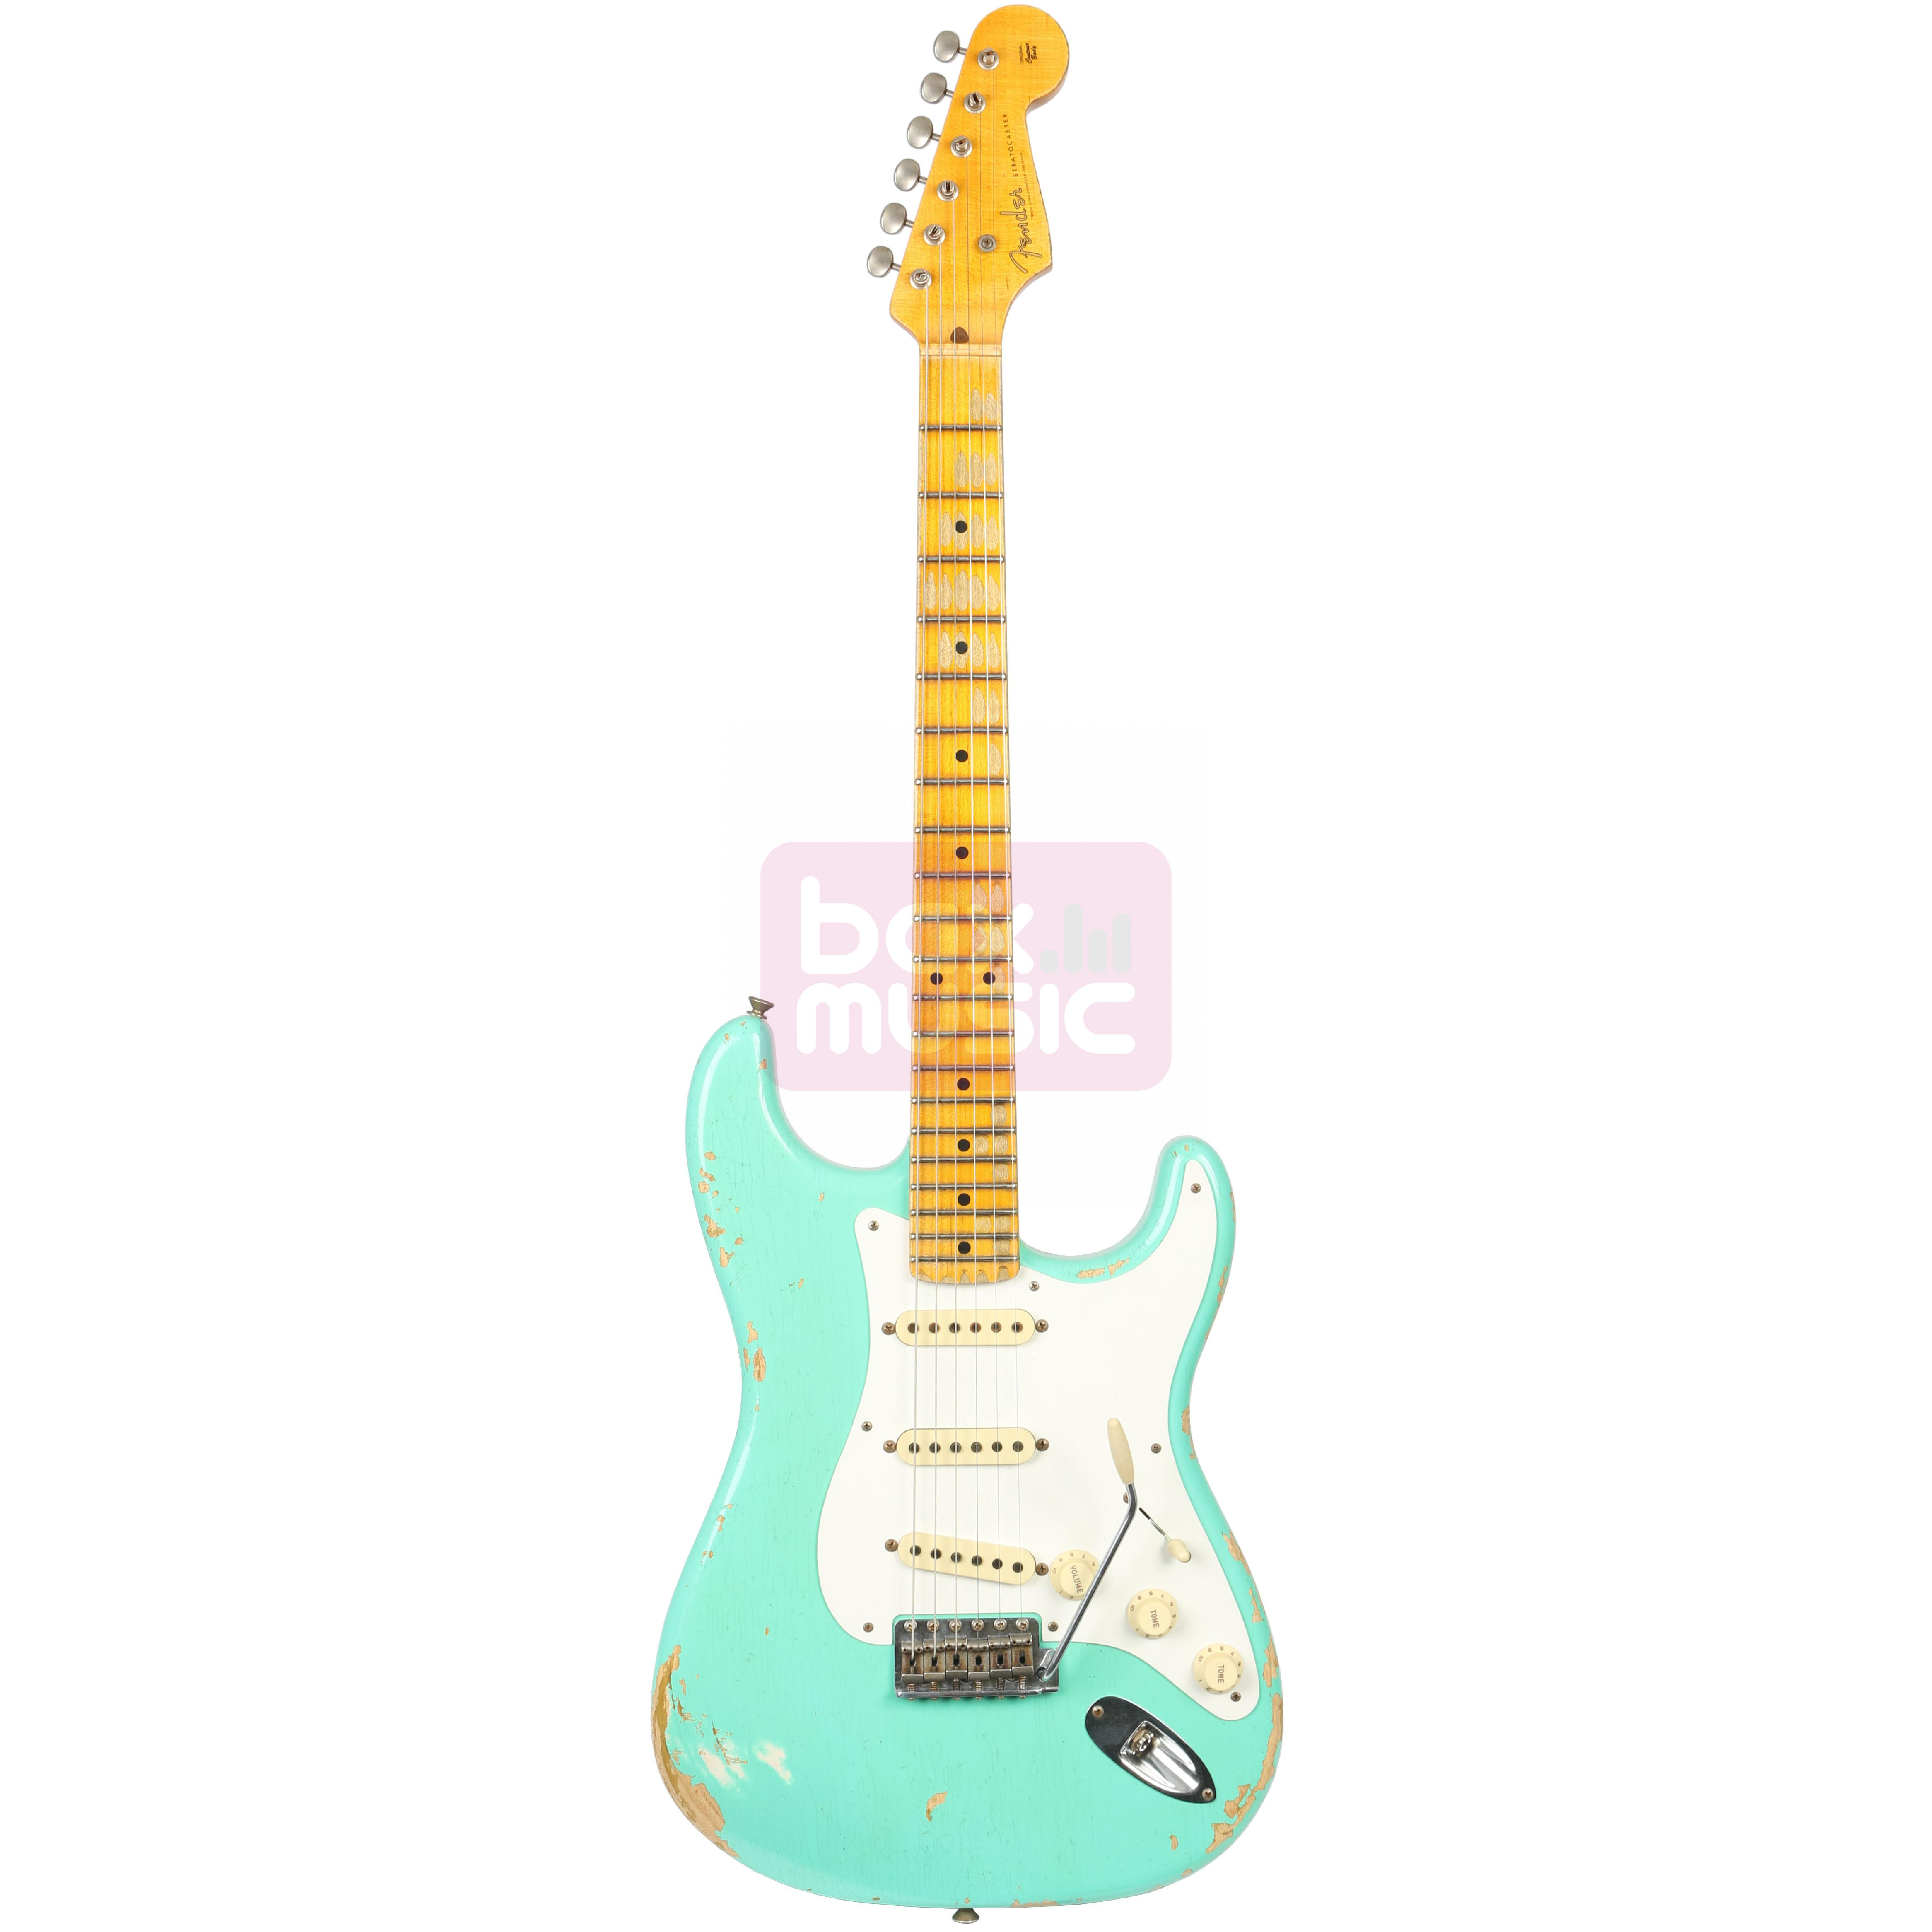 Fender Custom Shop Limited 1956 Relic Strat Faded Foam Green